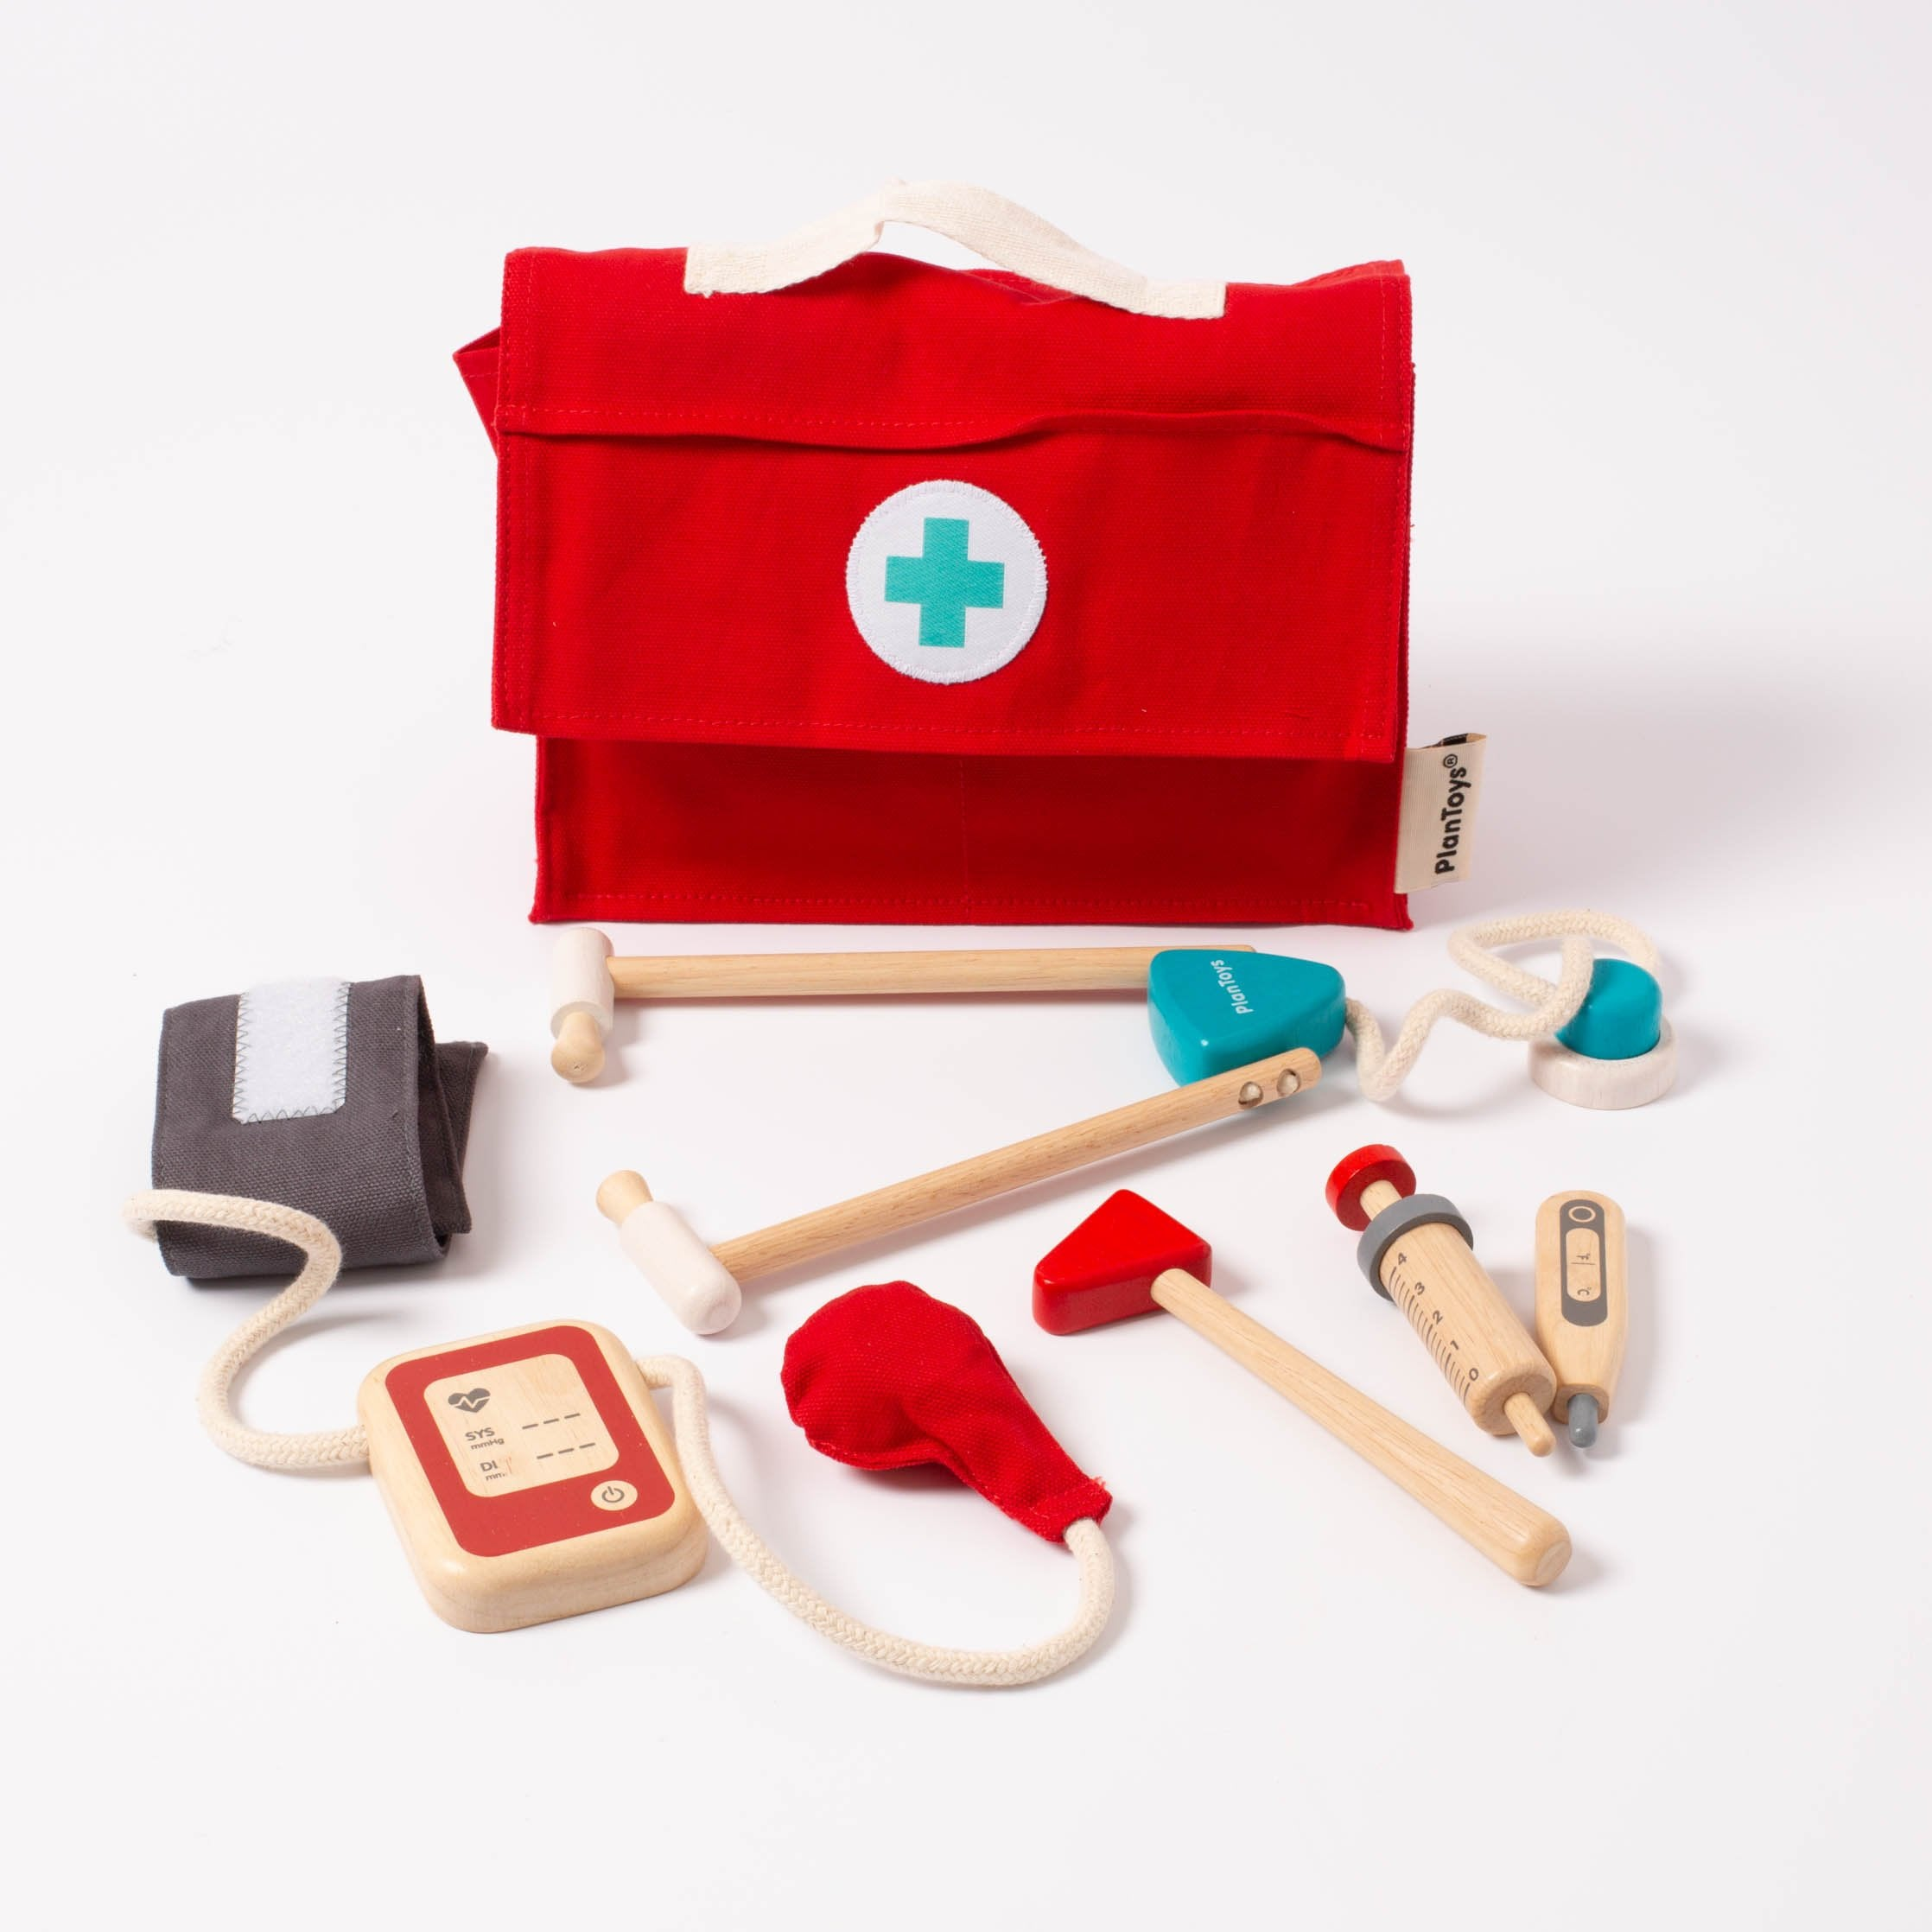 Five wooden and/or cotton doctor tools arranged in a white setting. Also shown is a red, cotton doctor's bag with a handle on top and a croos on the front